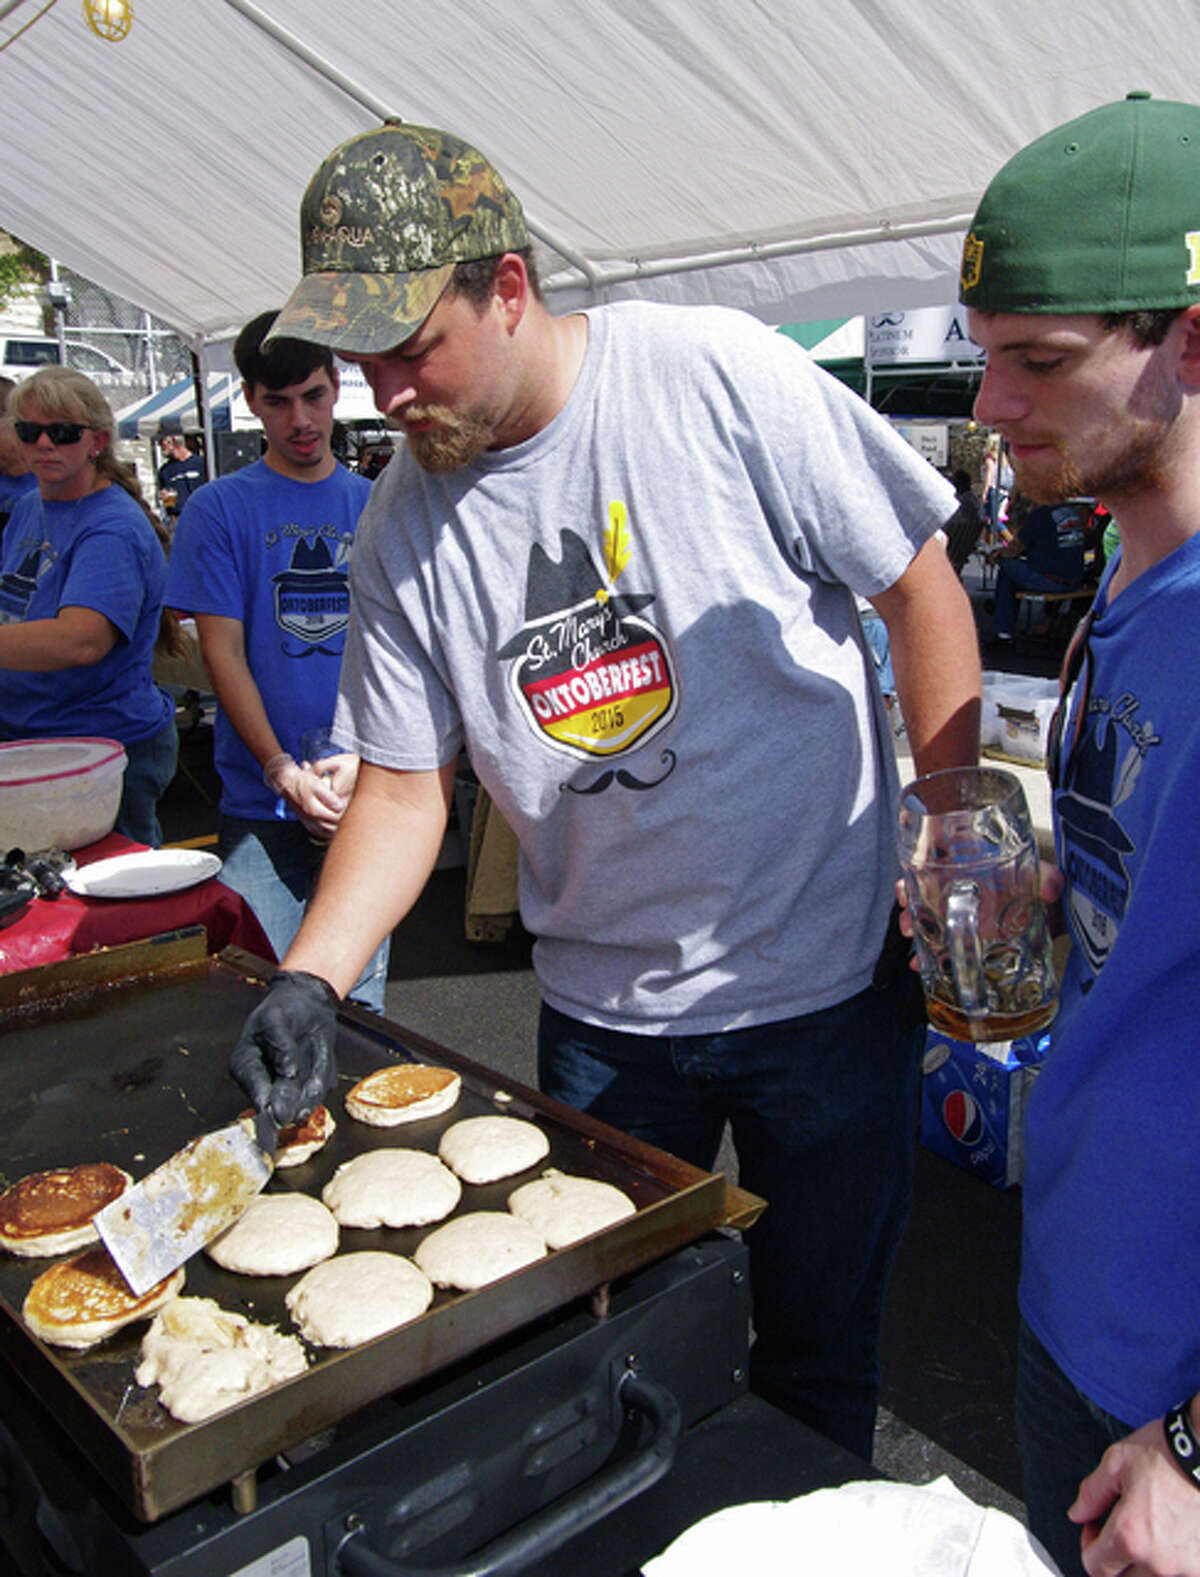 Nathan Taul, of Alton, left, and Mike Grossheim, of Godfrey, prepare potato pancakes during the St. Mary's Oktoberfest in Alton Sunday.